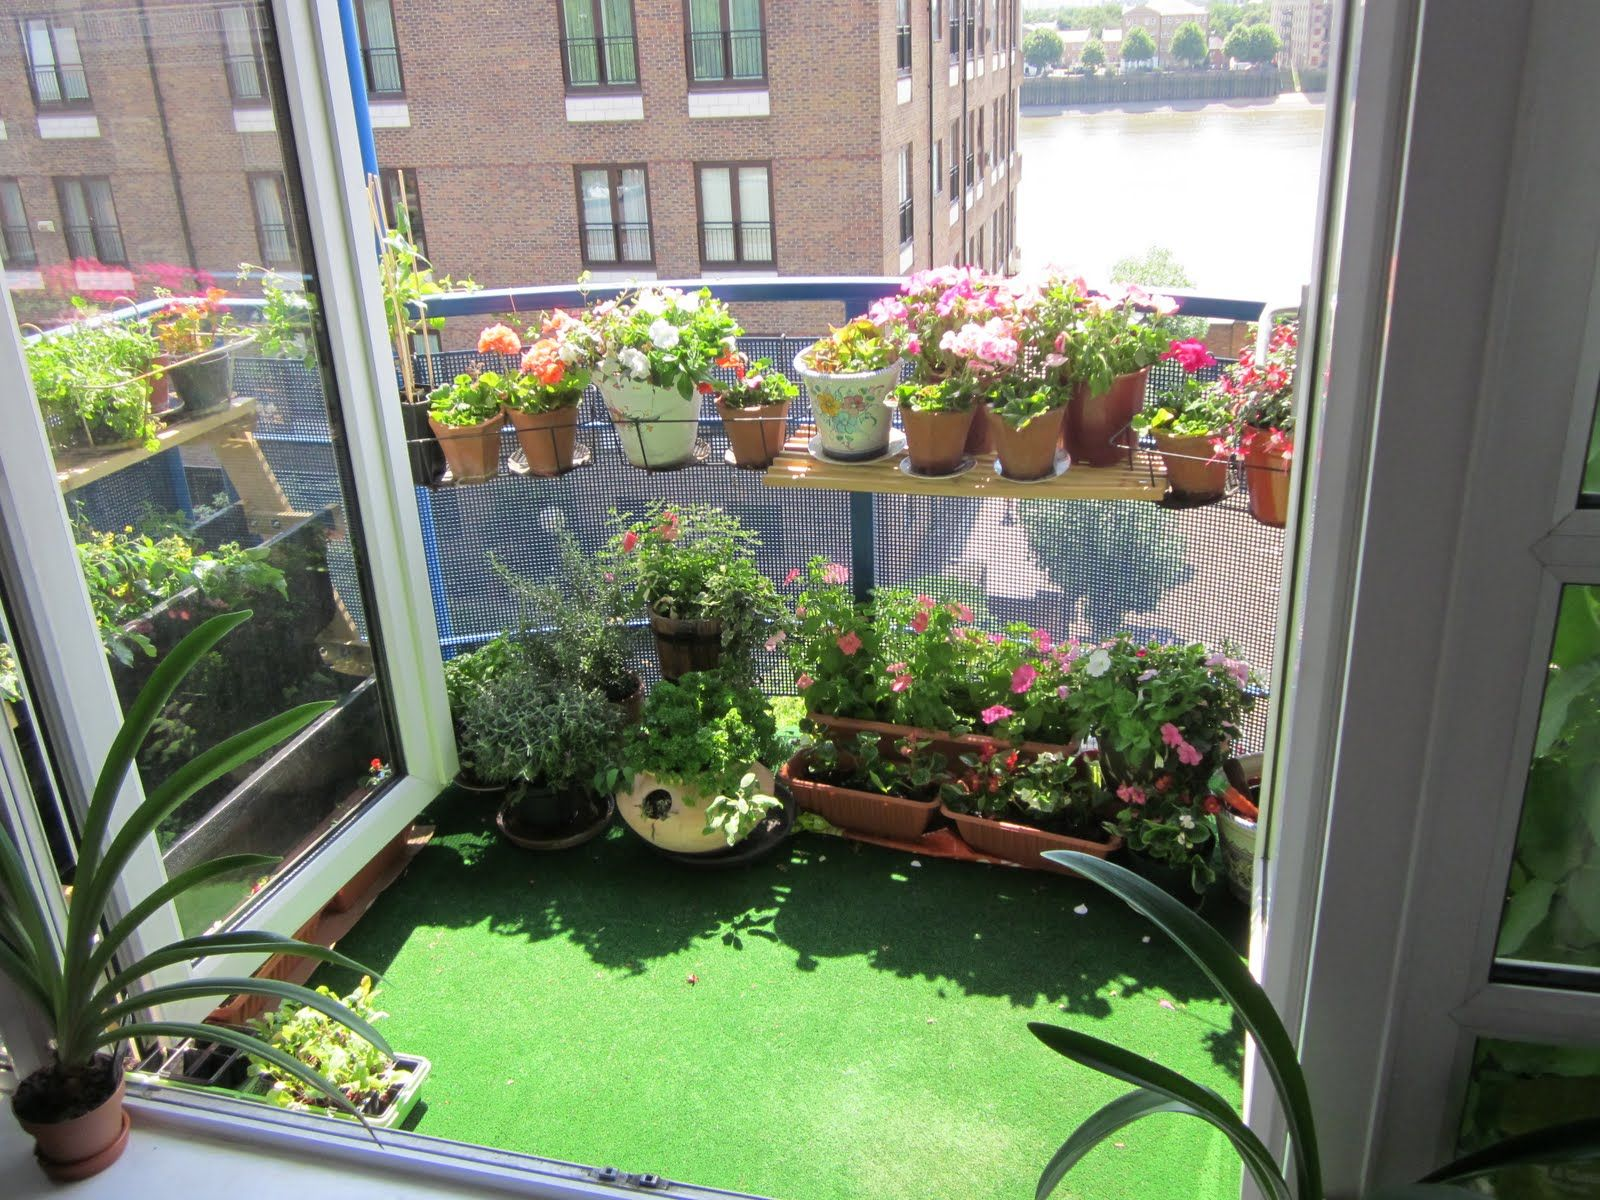 Apartments Balcony Garden Apartment Balcony Ideas - noqtr.com Home ...